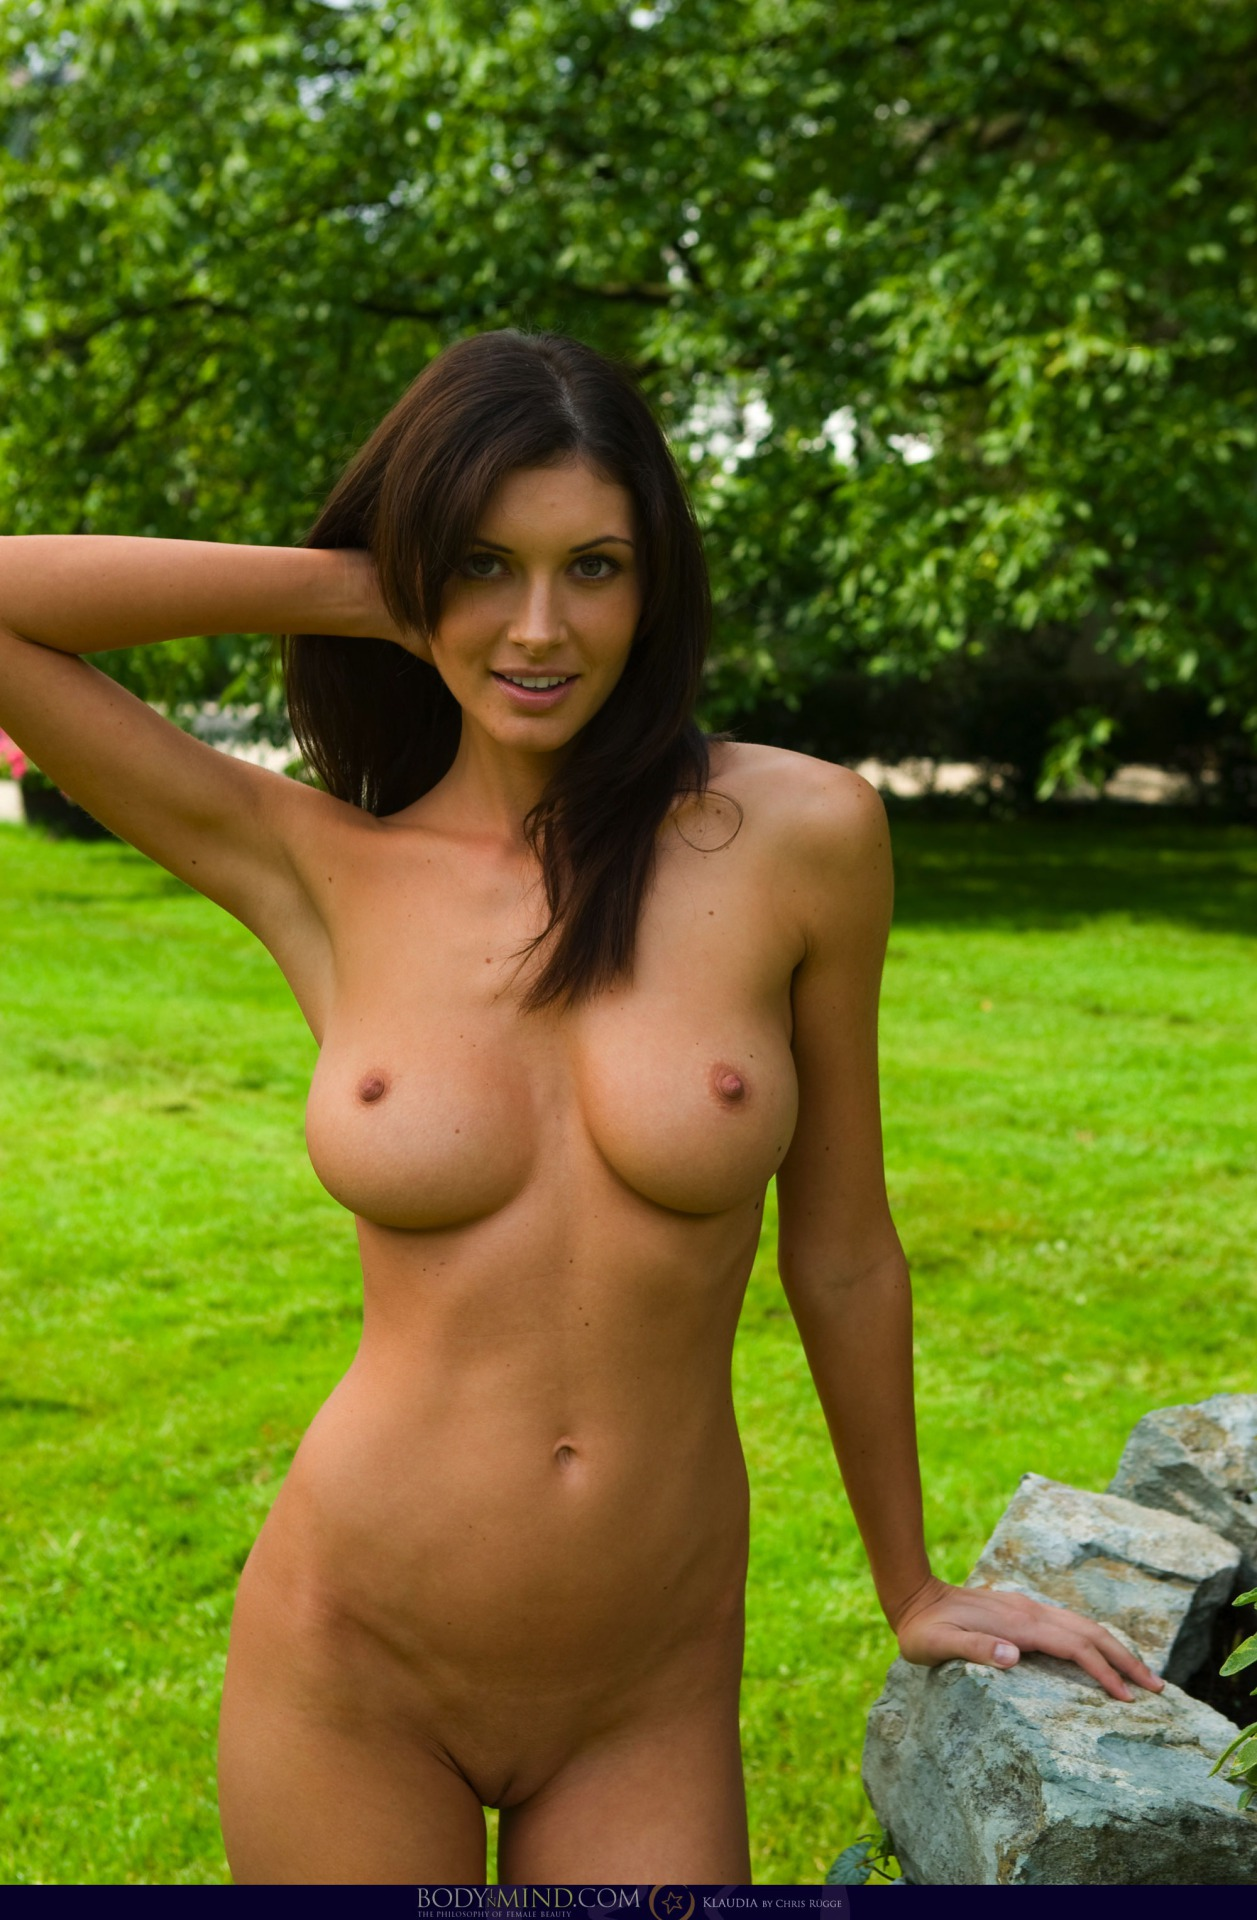 lesbian dildo free tubes look excite and delight lesbian